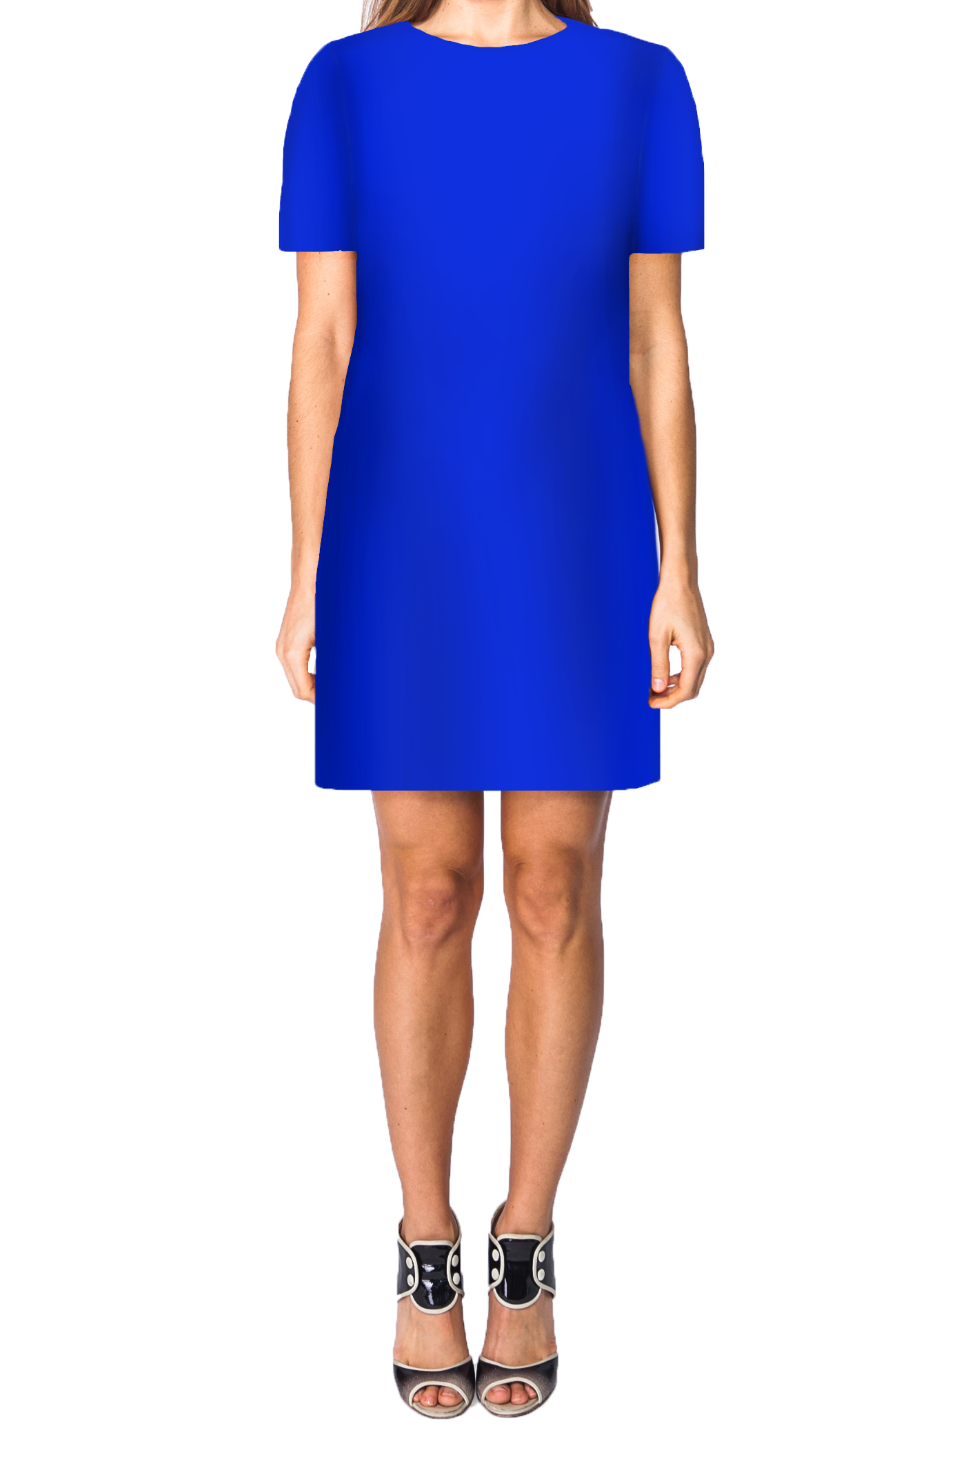 tee-dress-blue_edited.png